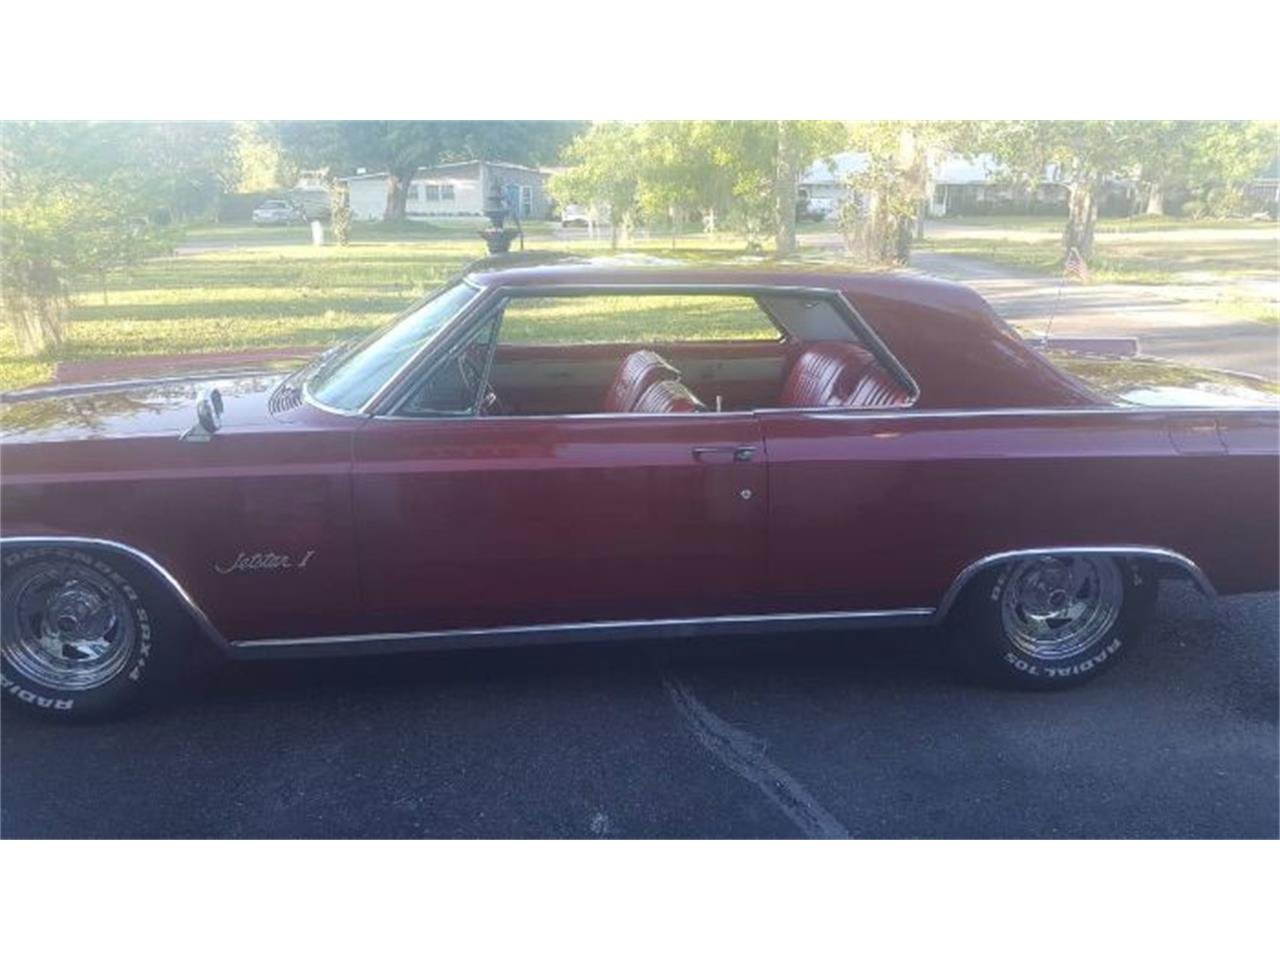 Large Picture of Classic 1964 Jetstar I - $25,995.00 Offered by Classic Car Deals - QFJE